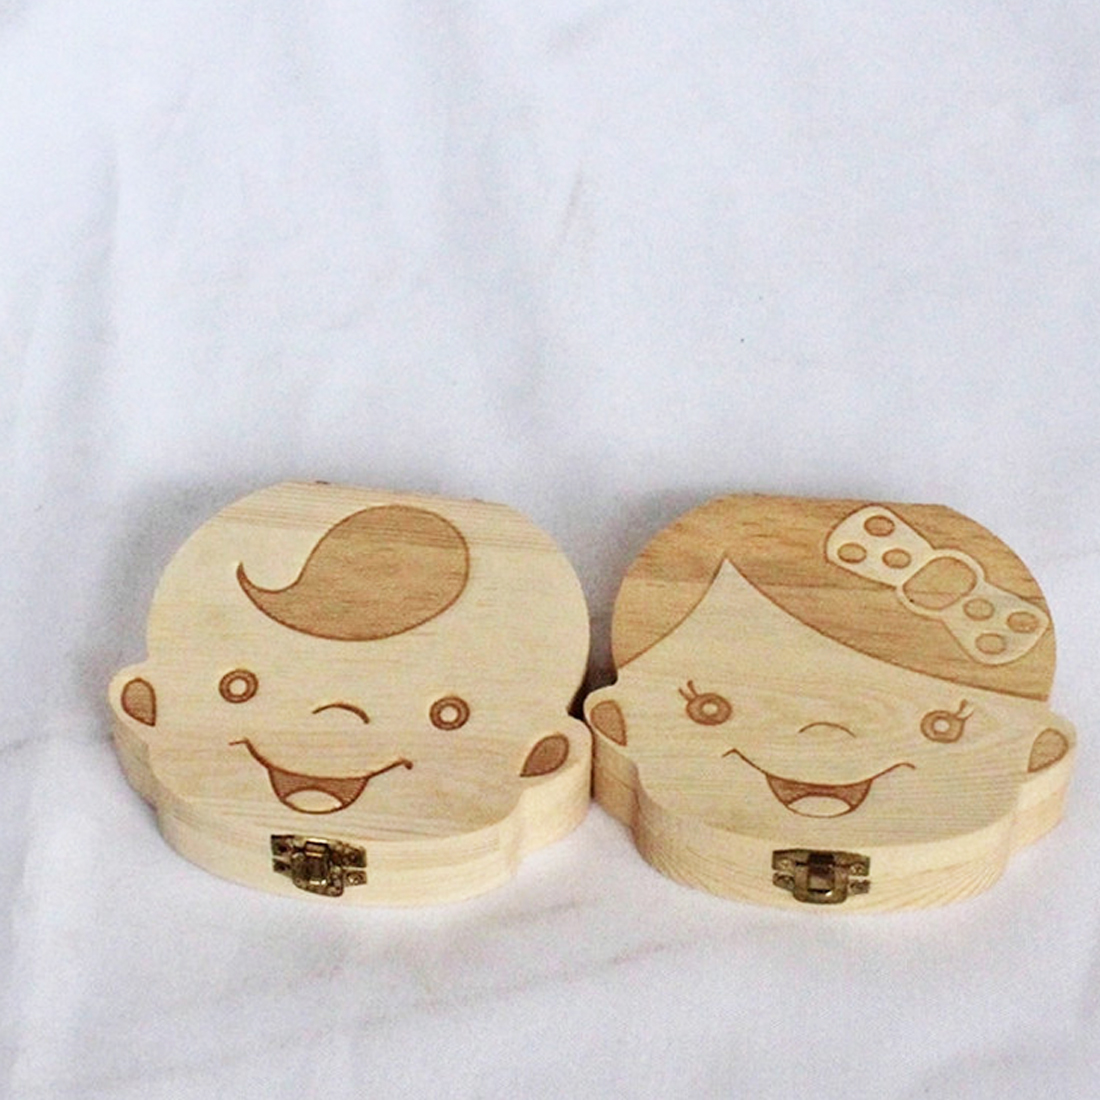 Baby Tooth Box Organizer Milk Tooth Storage Box For Boy Girl New English Wooden Save Teeth Umbilical Cord